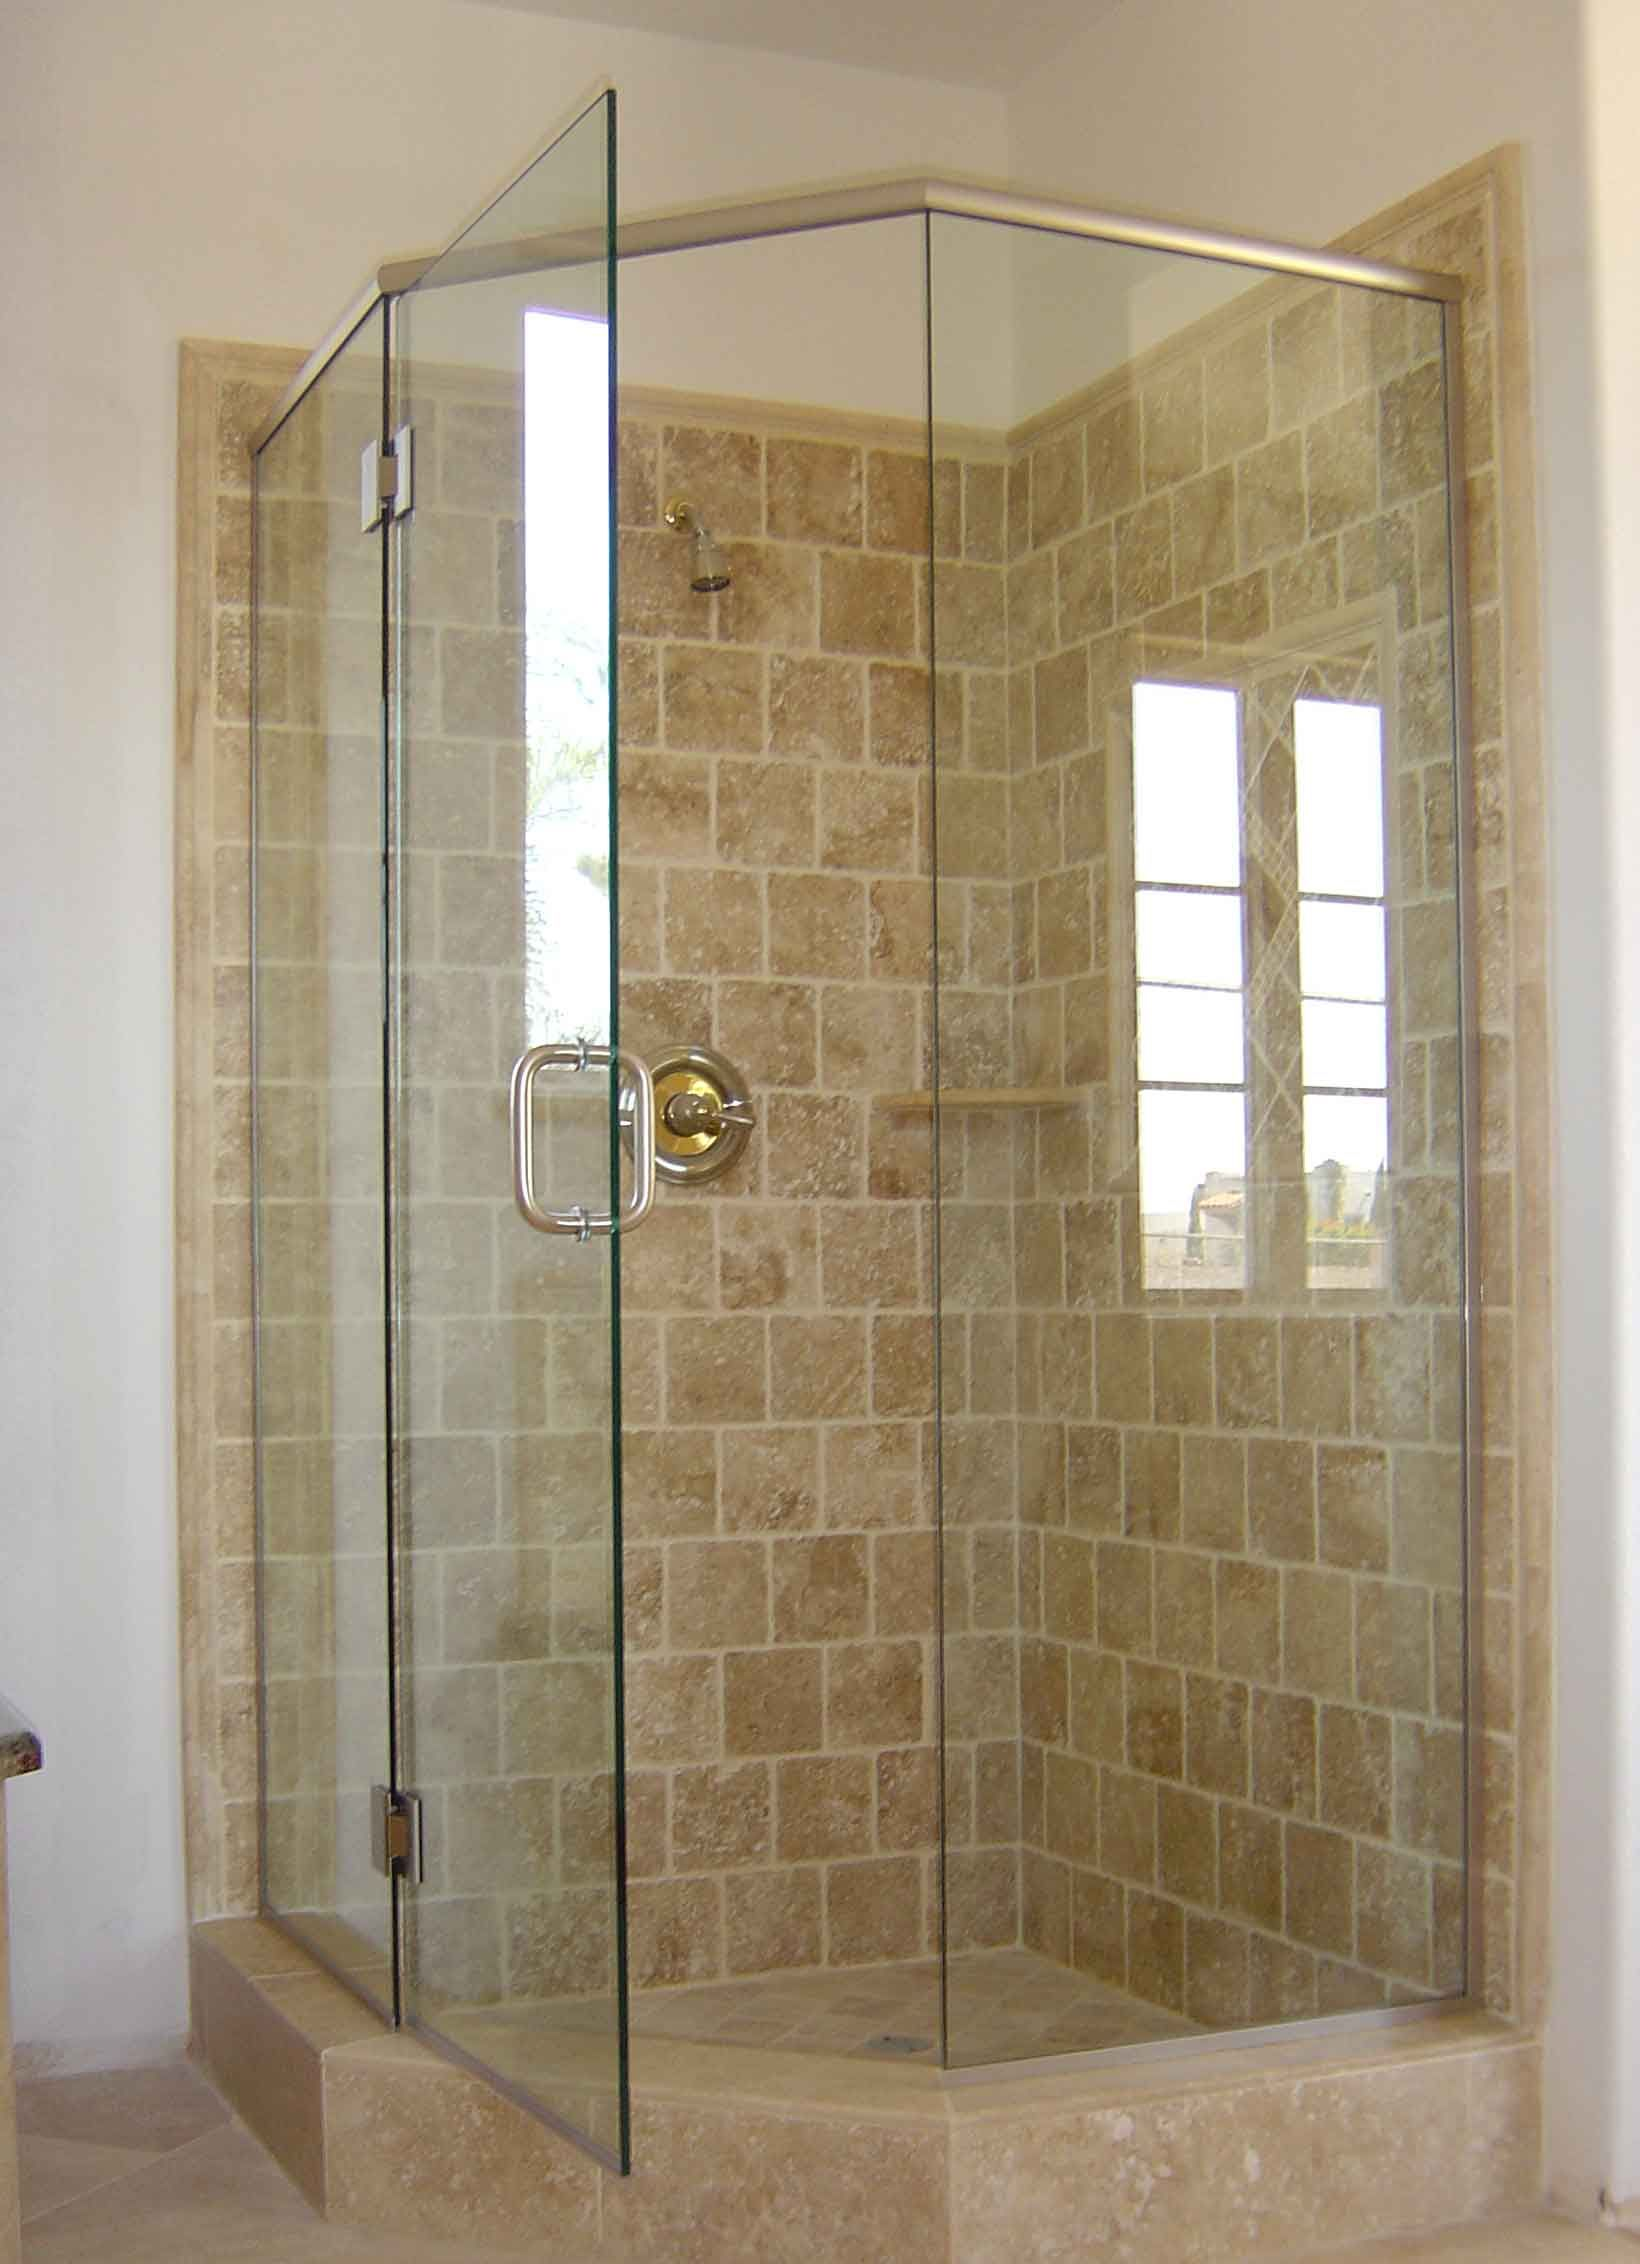 Glorious Single Swing Shower Door As Glass Shower Panels With Chrome ...